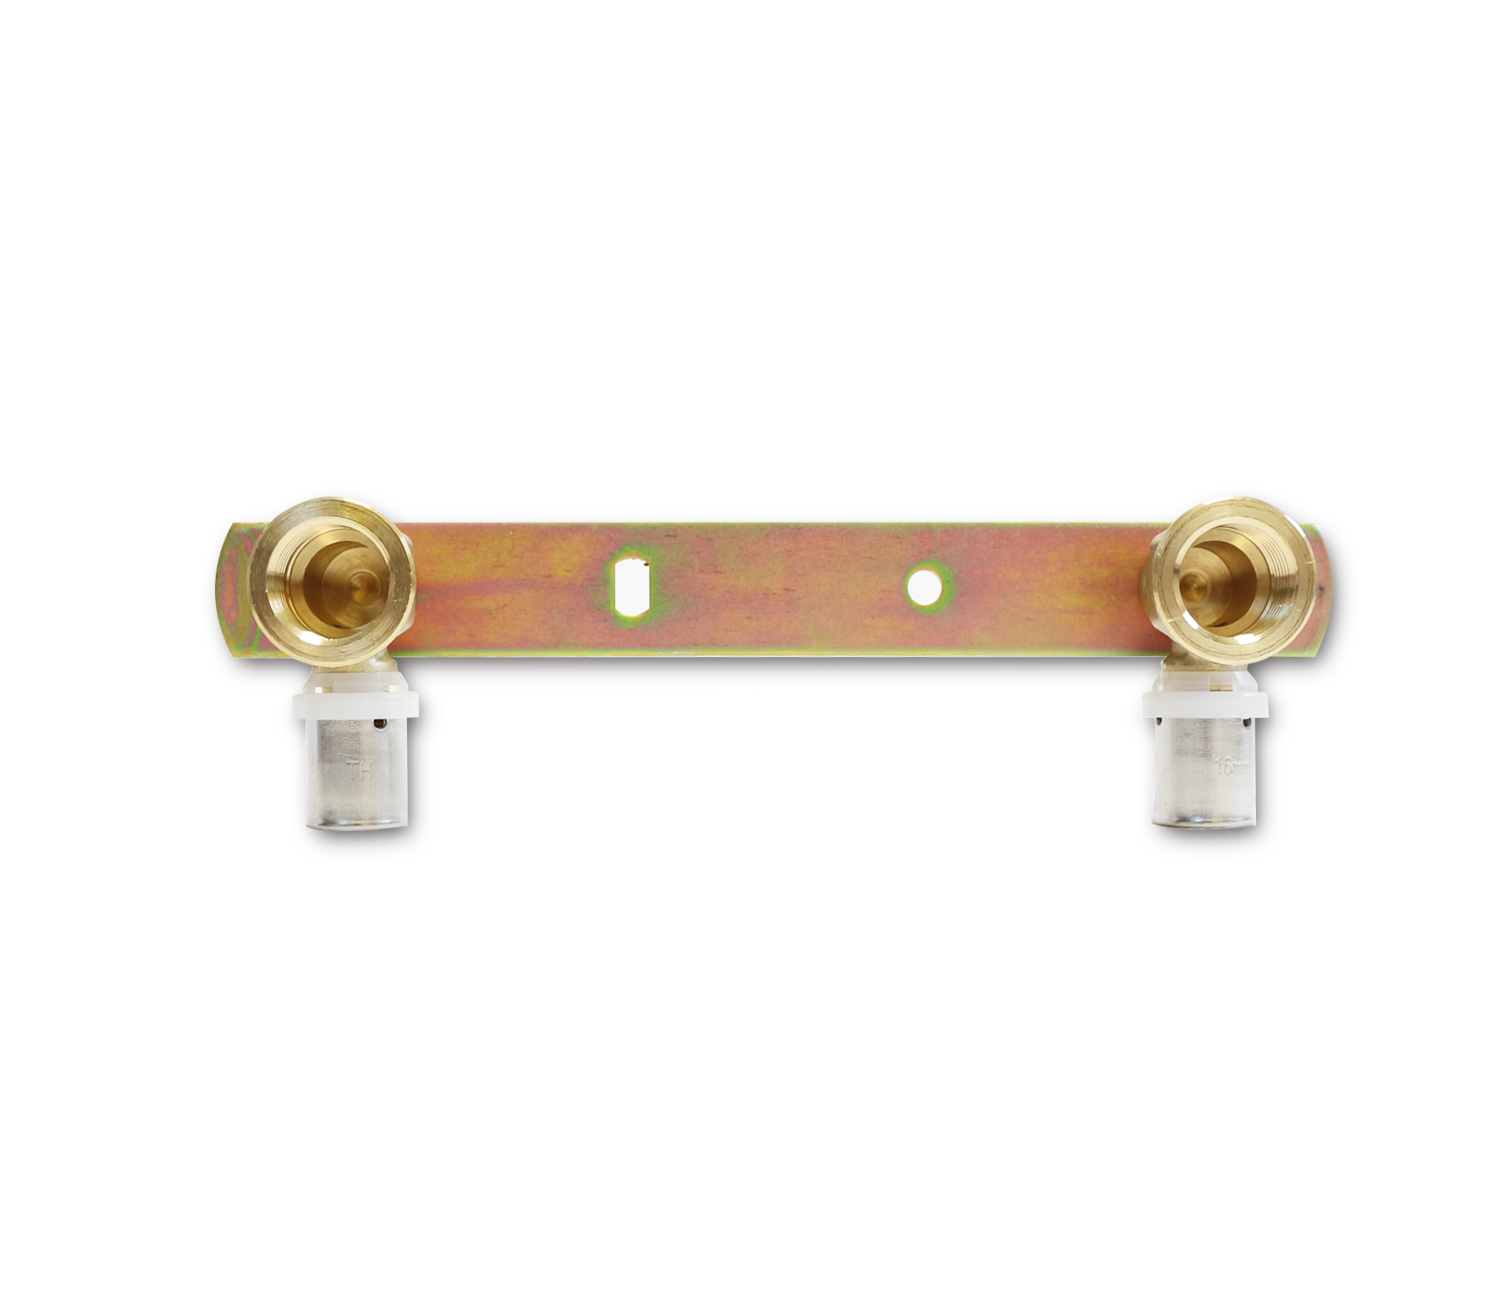 Suntask_shower_bracket_16mm.jpg